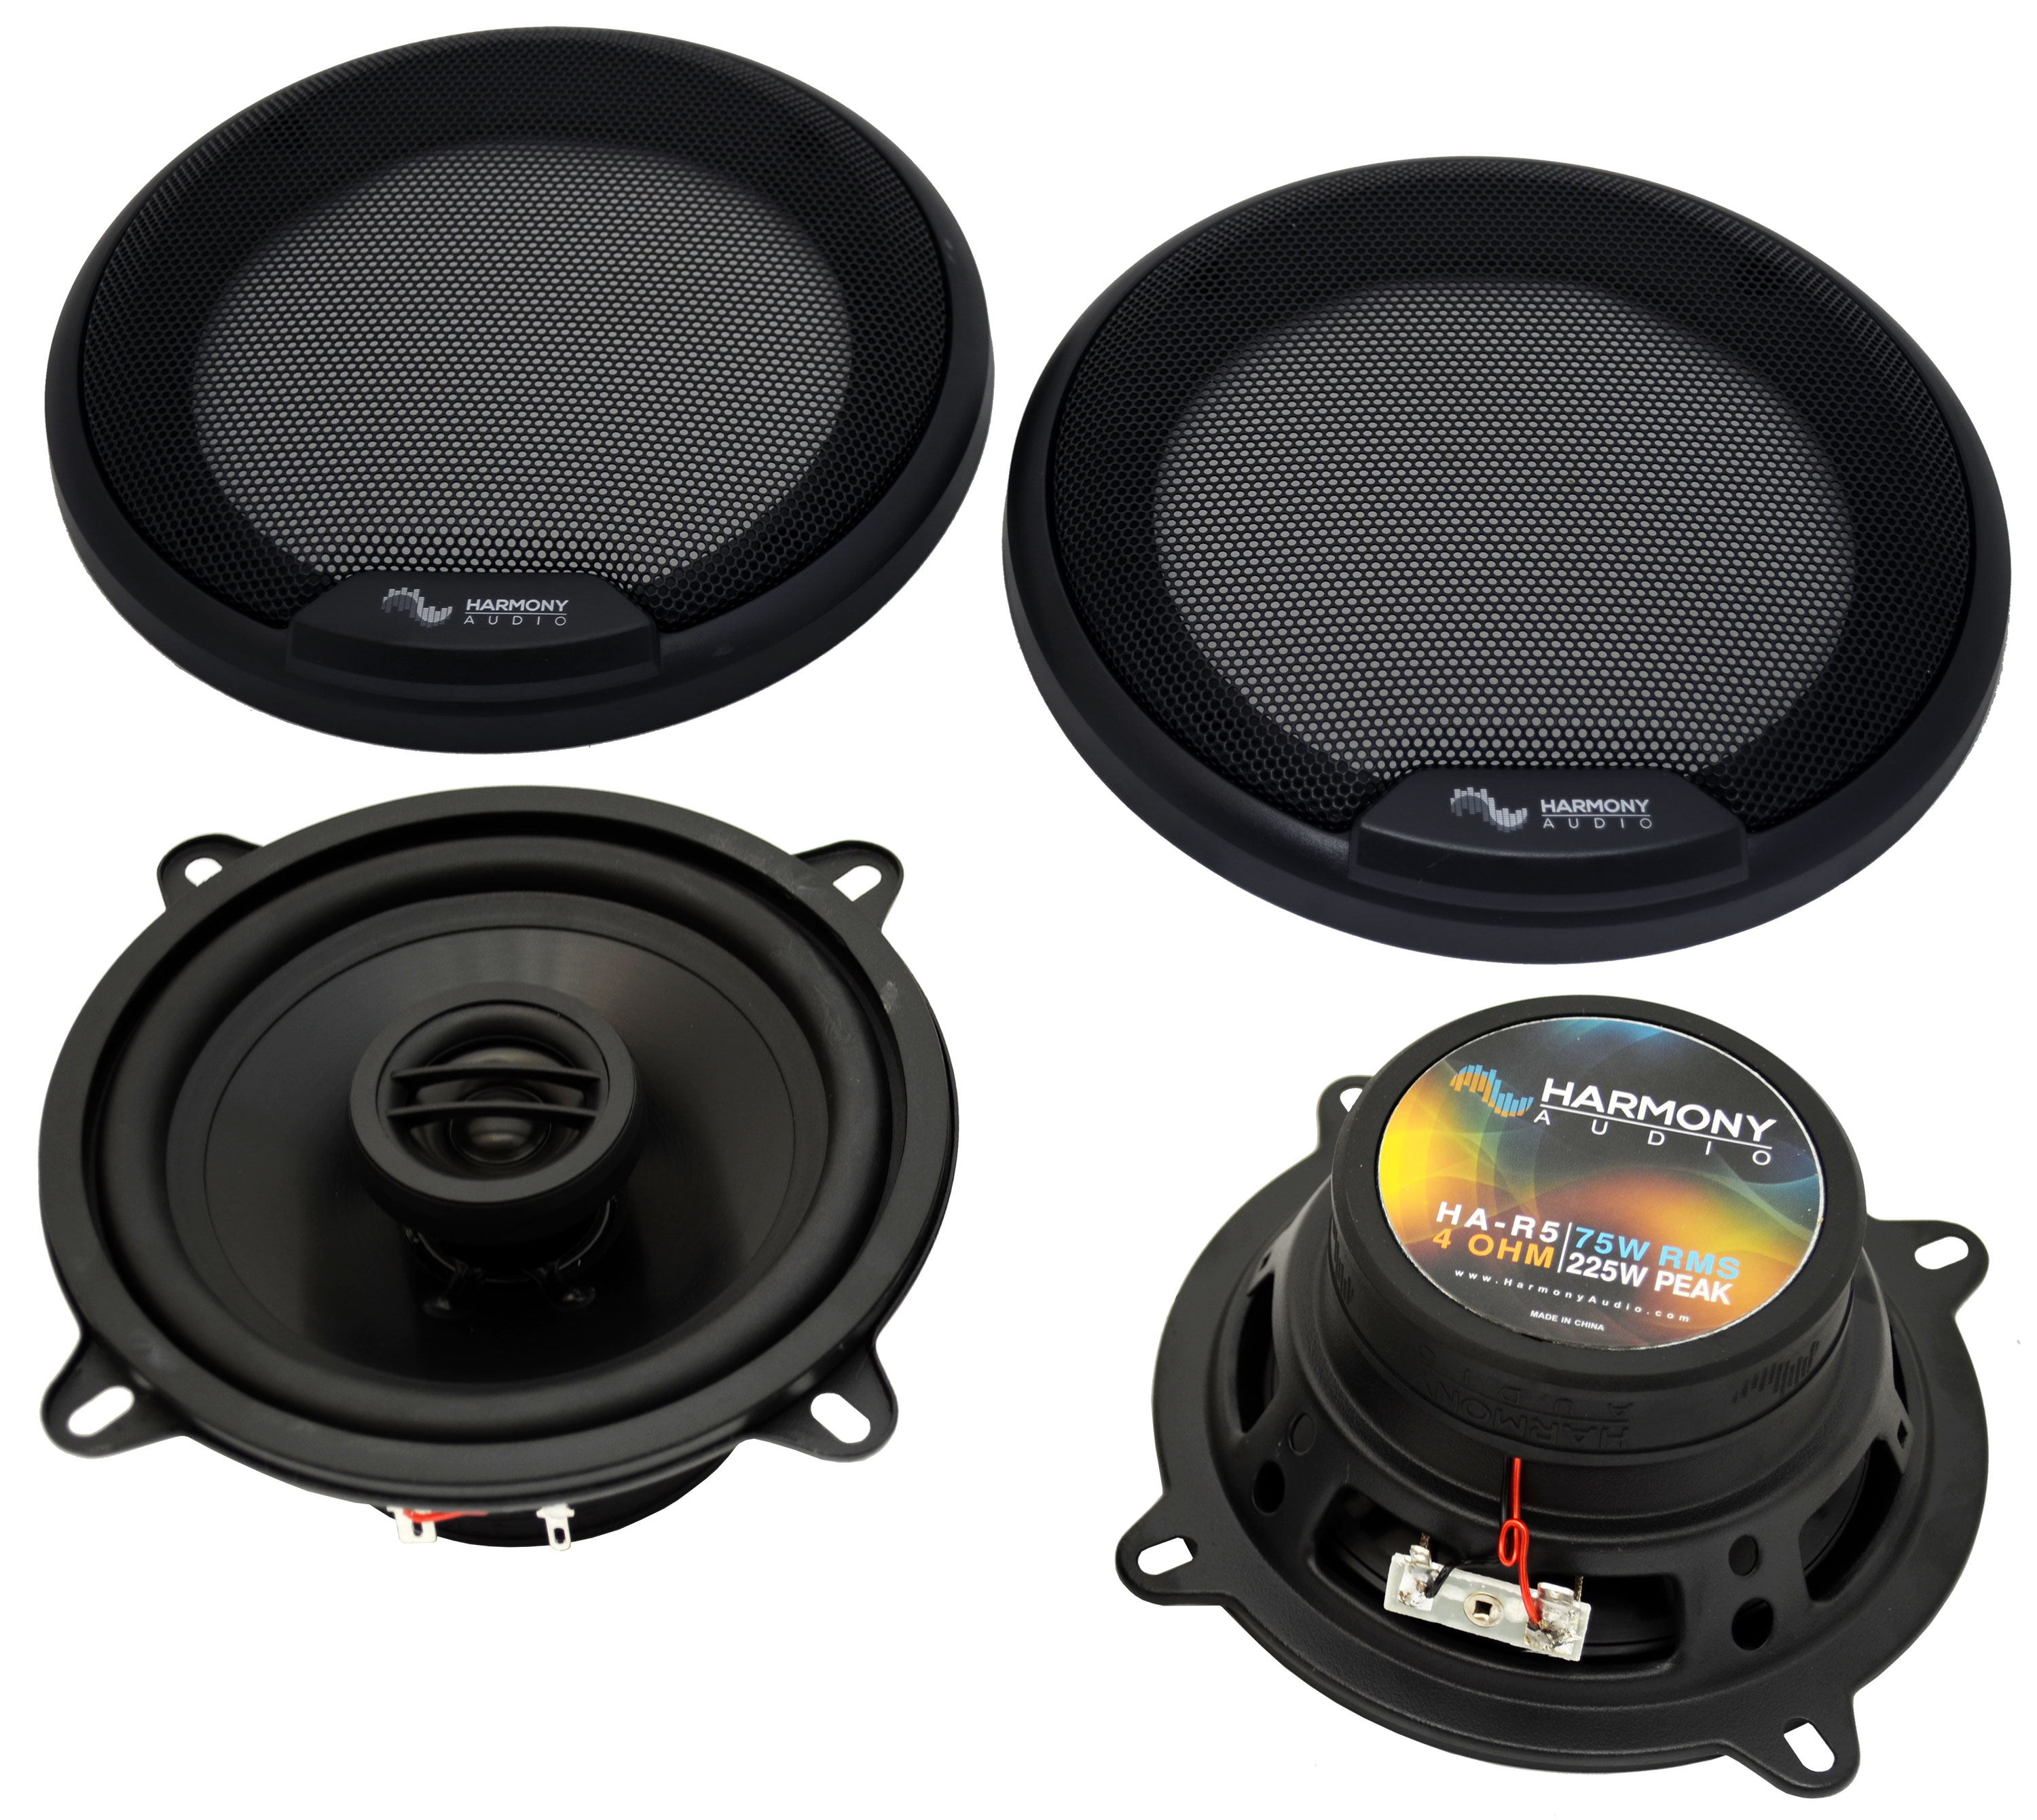 Harmony Audio Compatible with 1996-2002 BMW Z3 Vehicle HA-R5 New Rear Speaker Replacement Upgrade